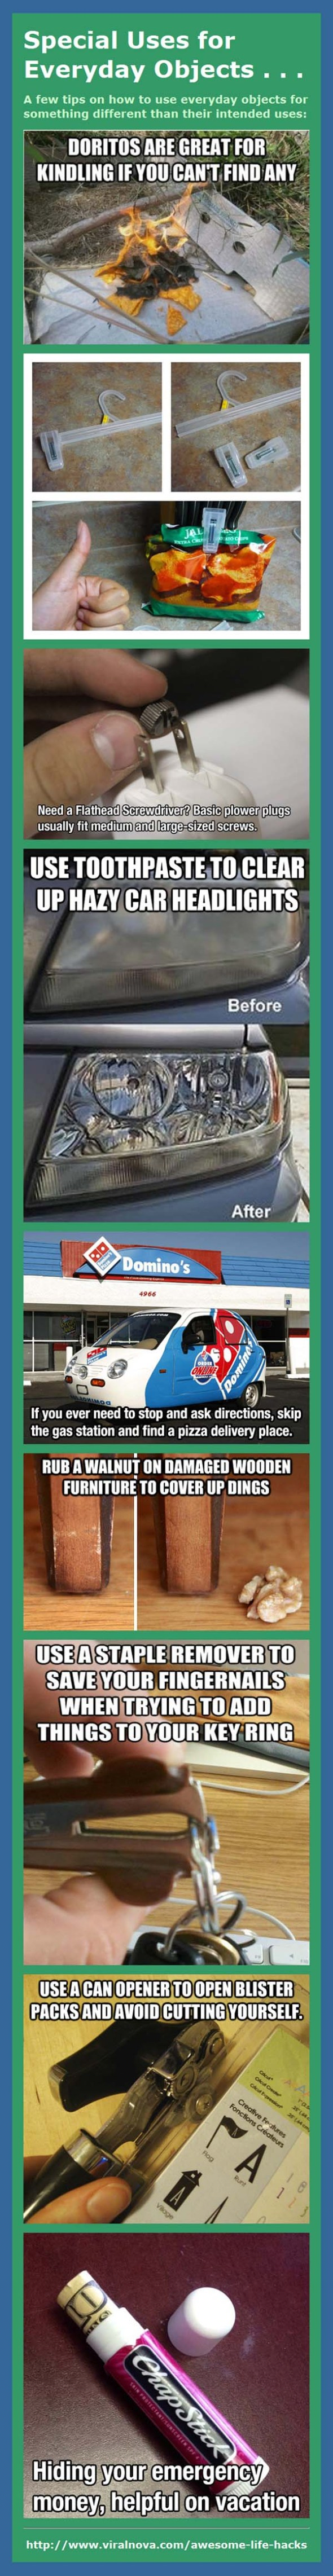 Special Uses for Everyday Objects